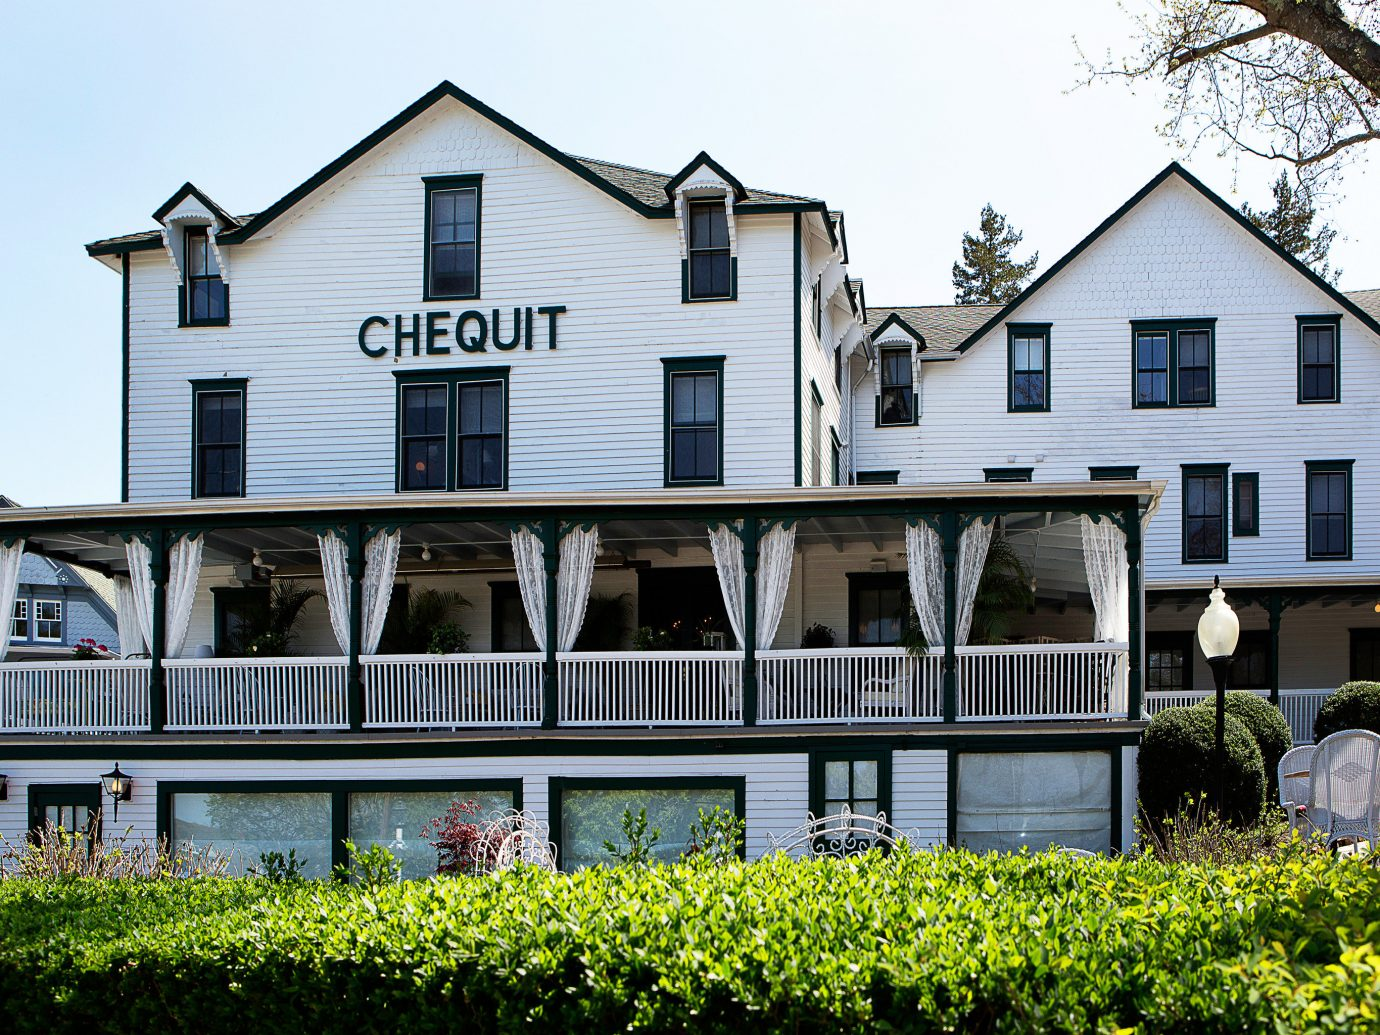 The Chequit